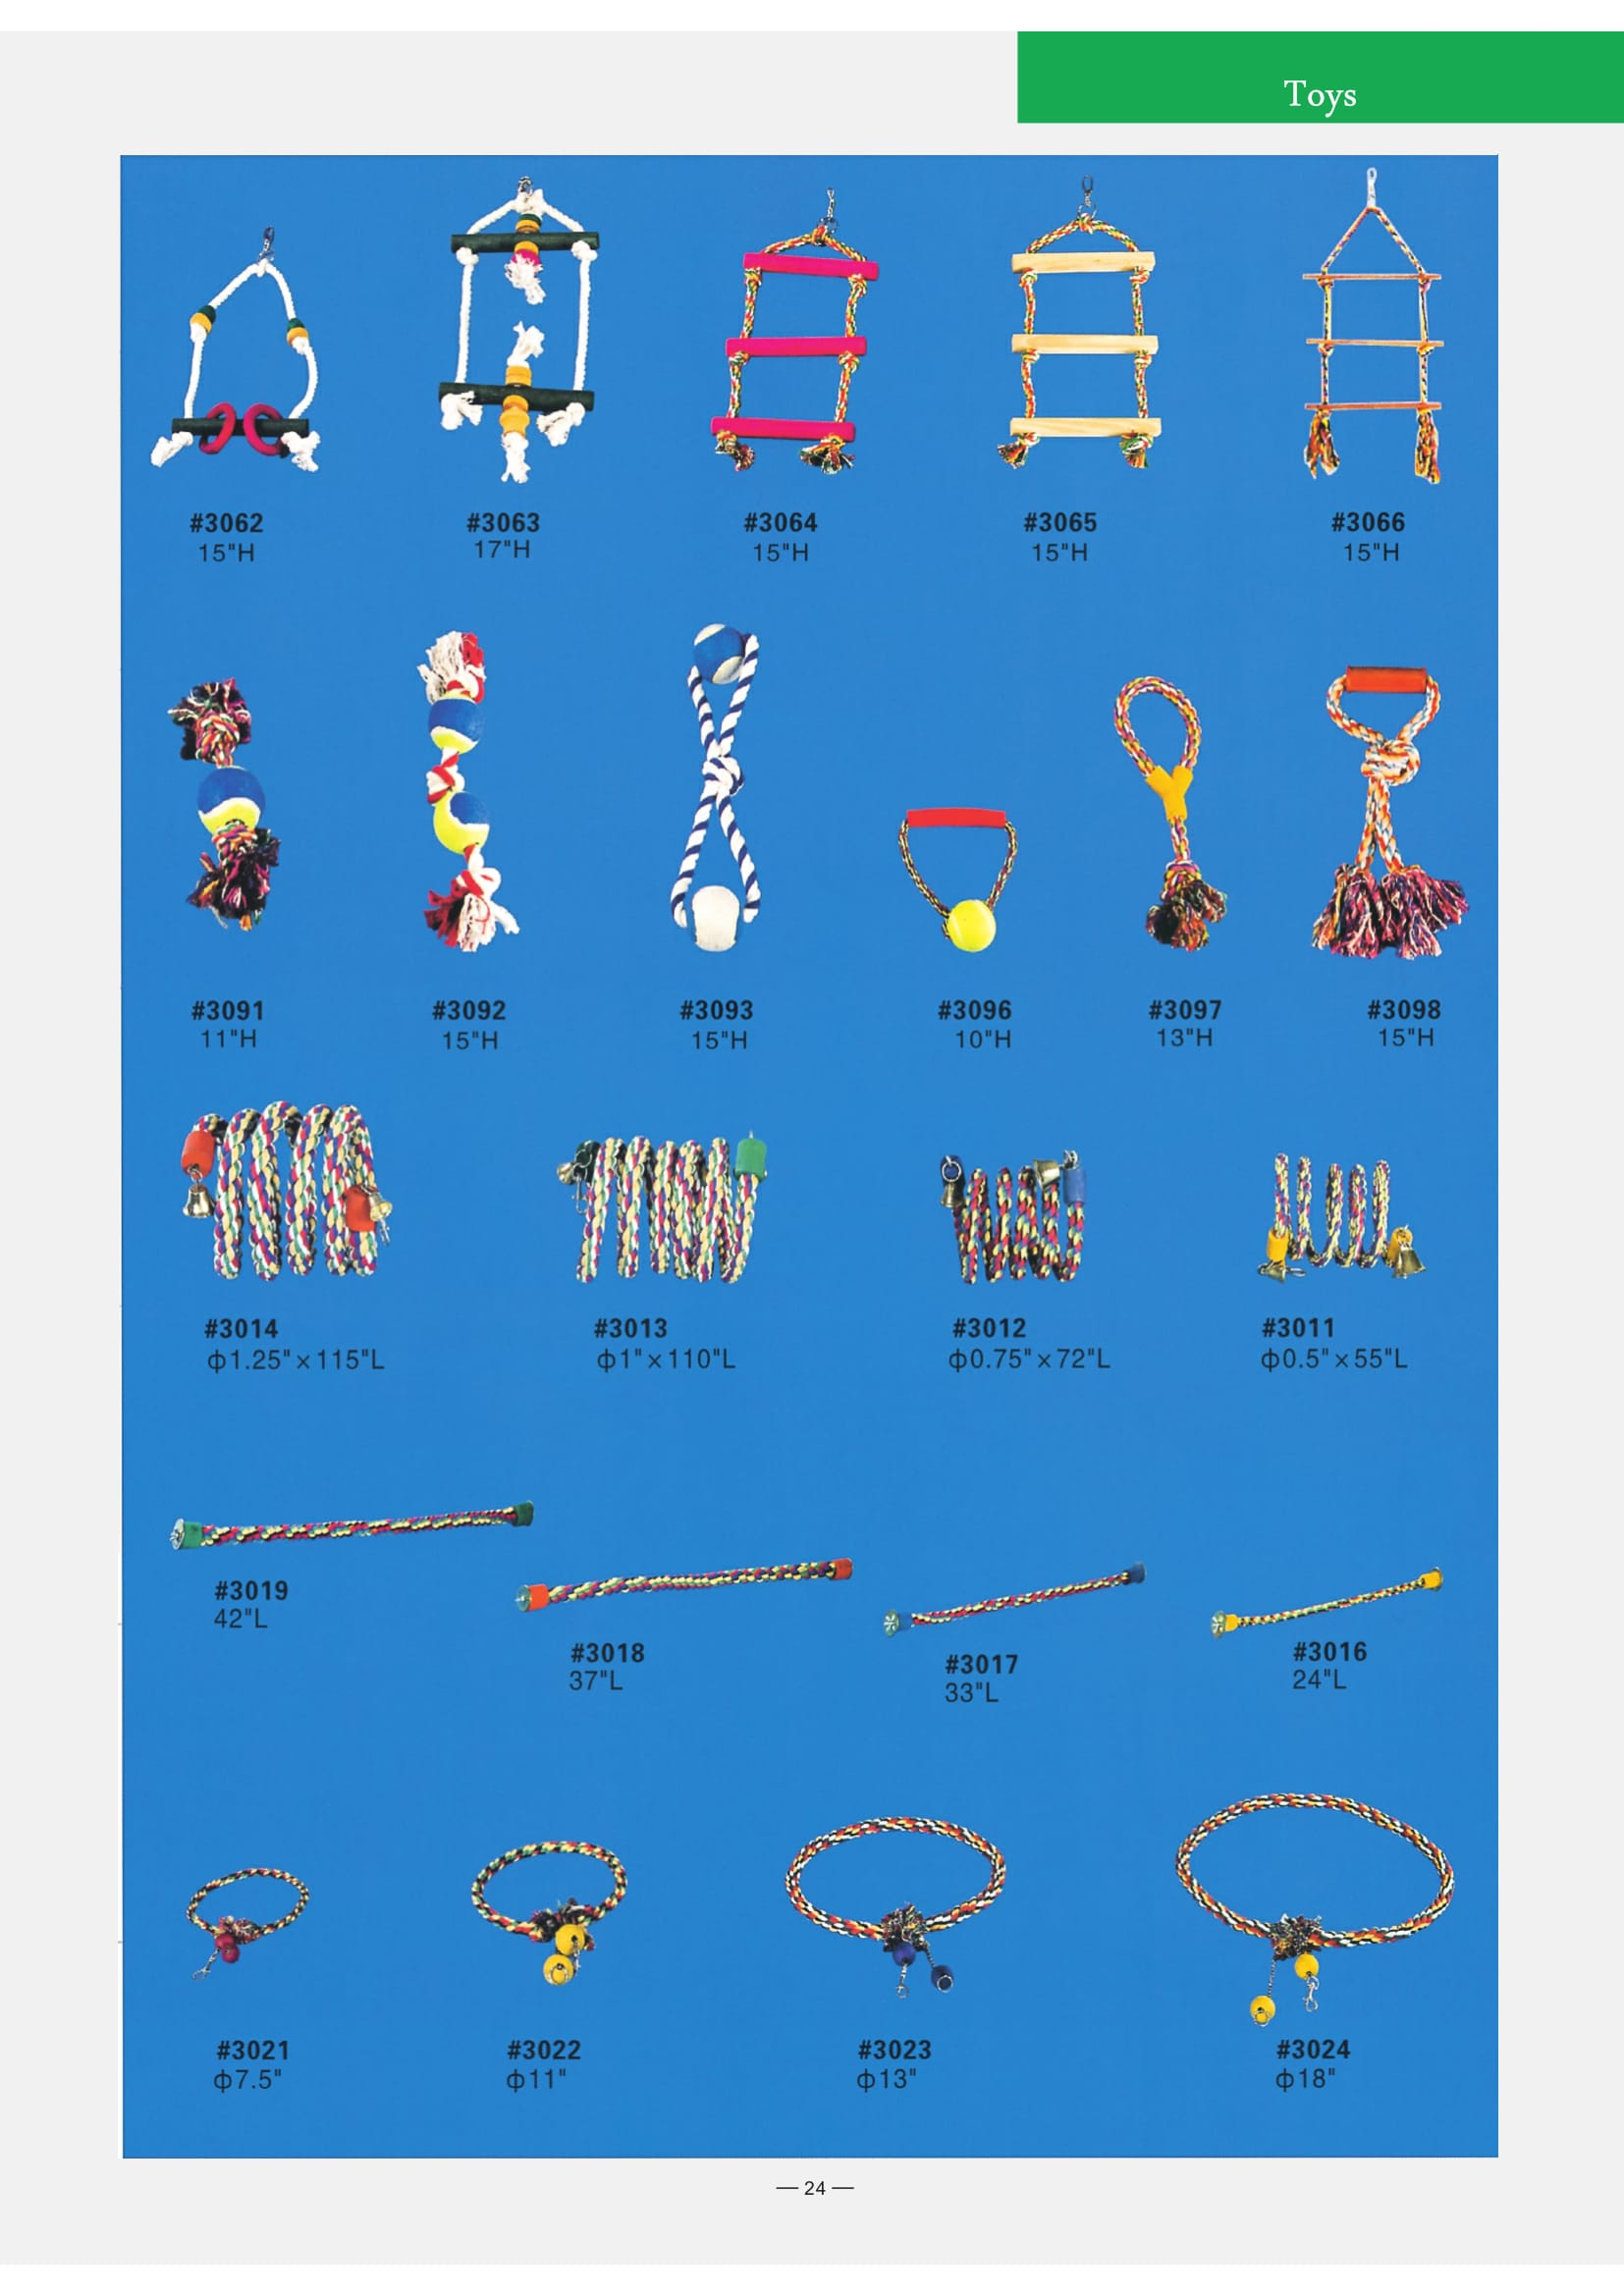 8. Accessories and Toys-4